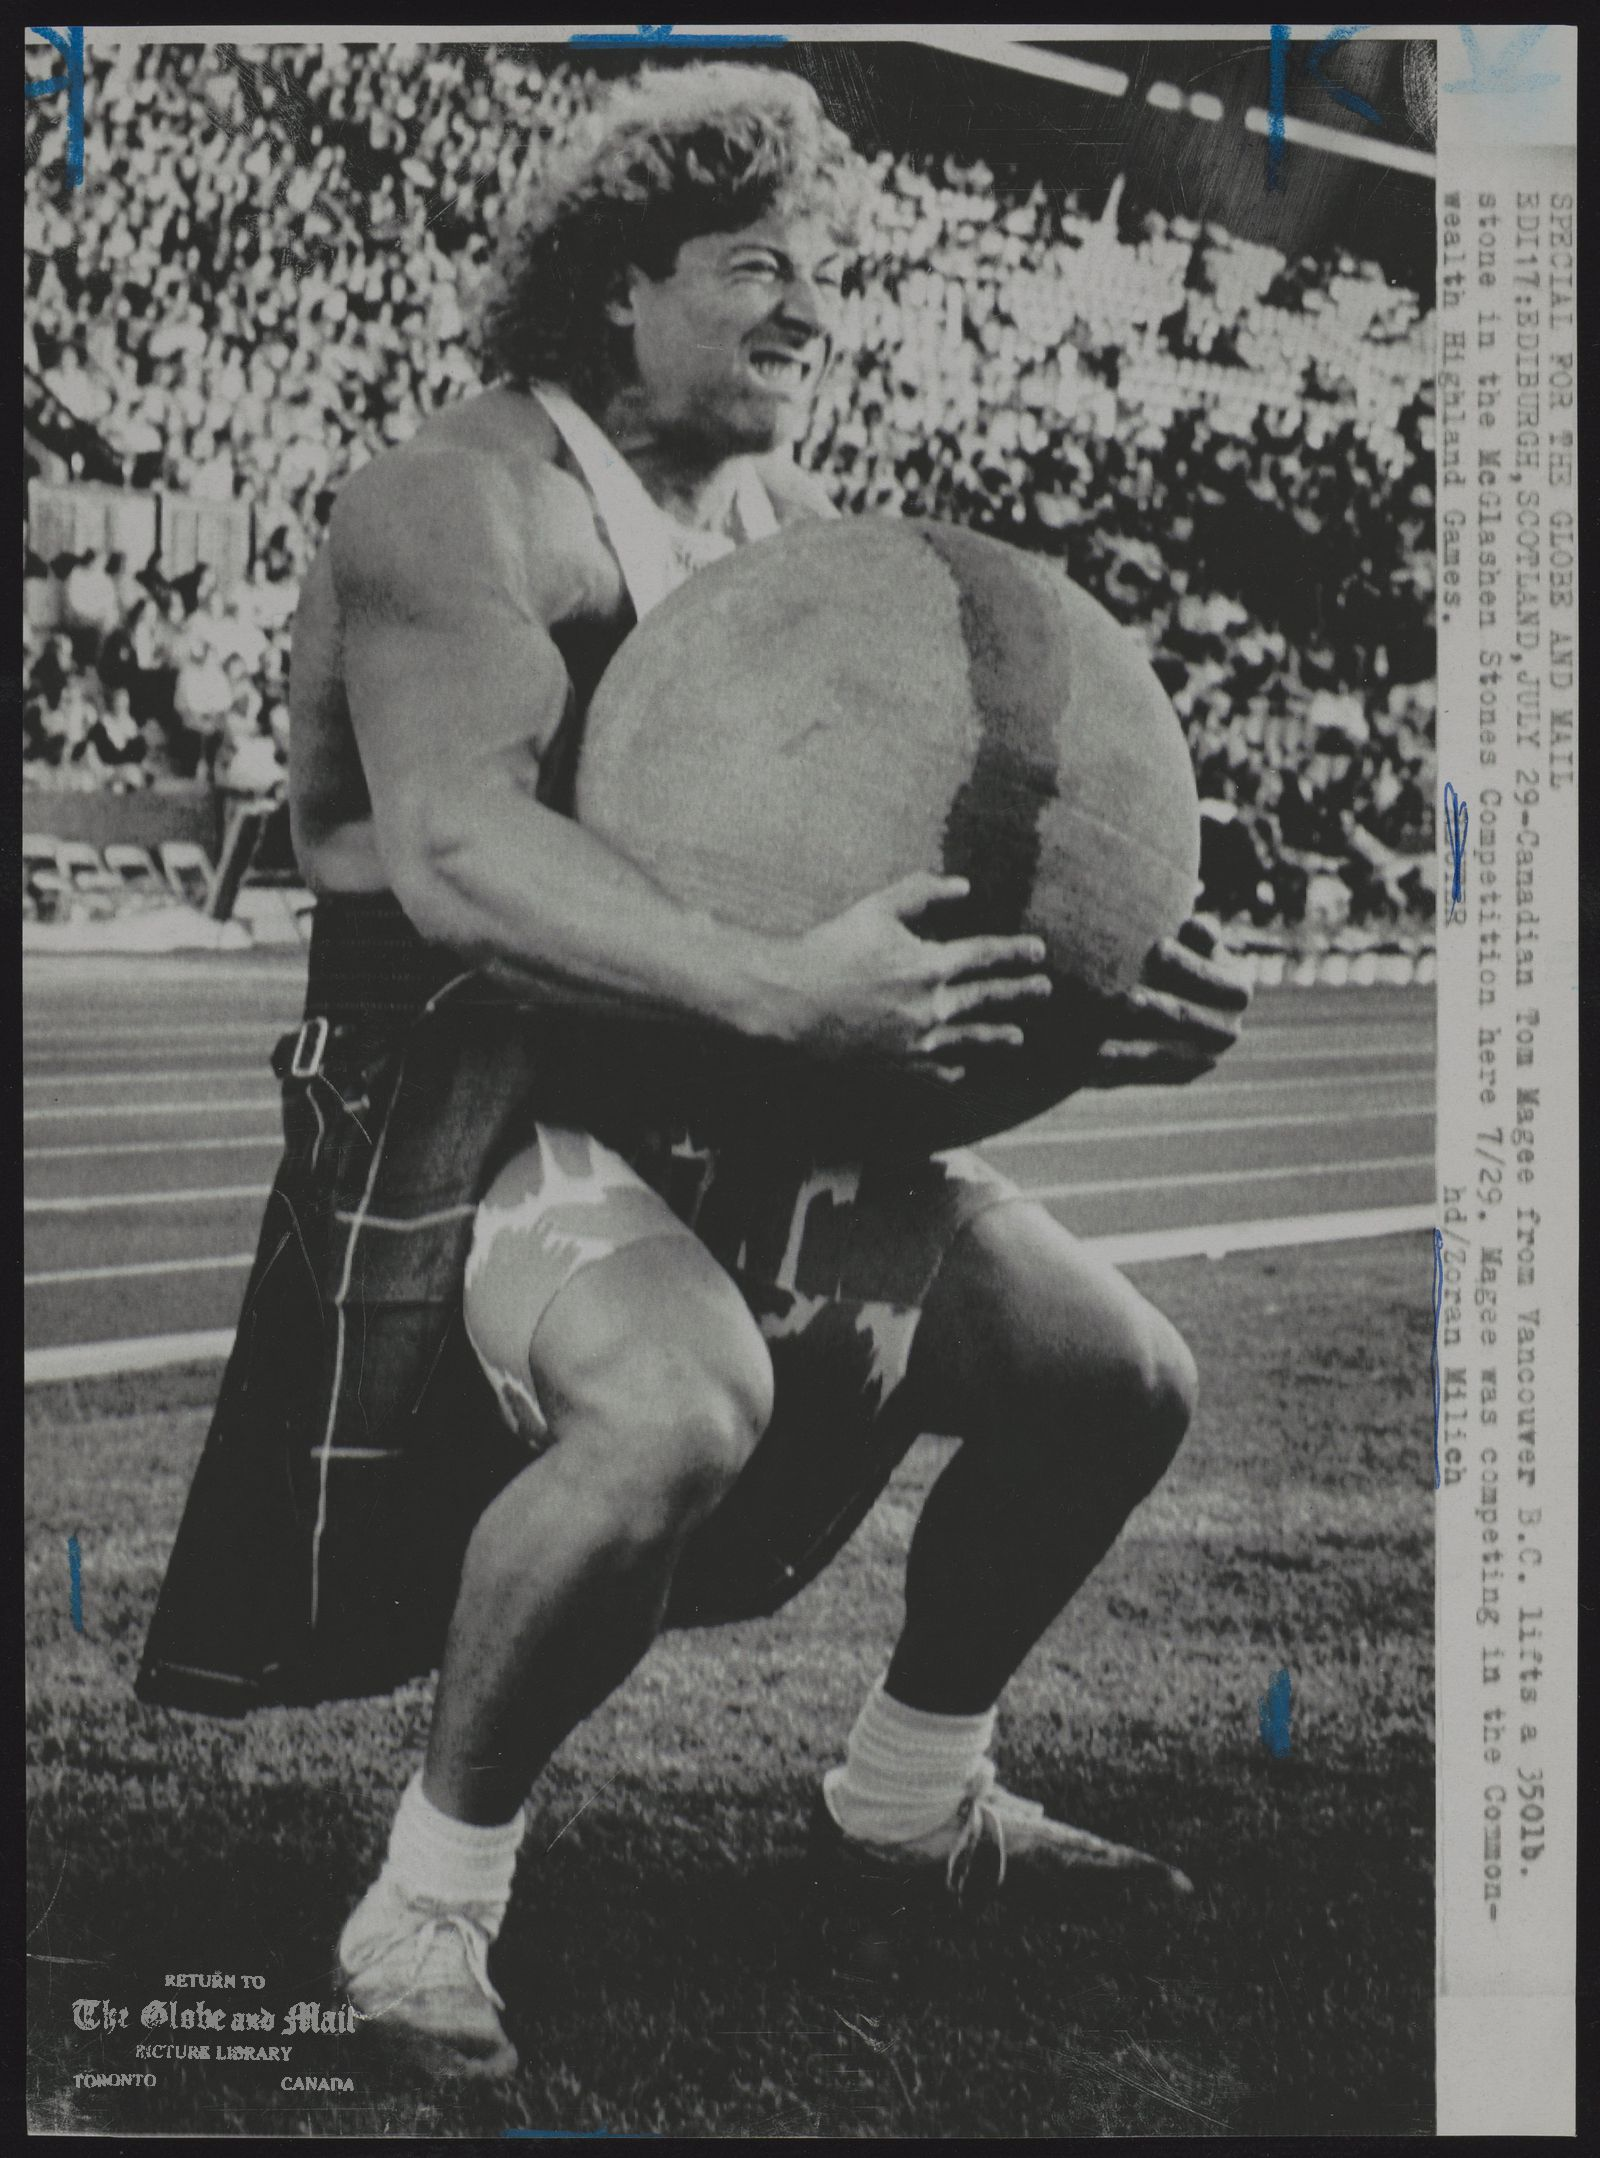 HIGHLAND GAMES SPECIAL FOR THE GLOBE AND MAIL EDI17:EDINBURGH,SCOTLAND,JULY 29-Canadian Tom Magee from Vancouver B.C. lifts a 350lb stone in the McGlashen Stones Competition here 7/29. Magee was competing in the Commonwealth Highland Games.